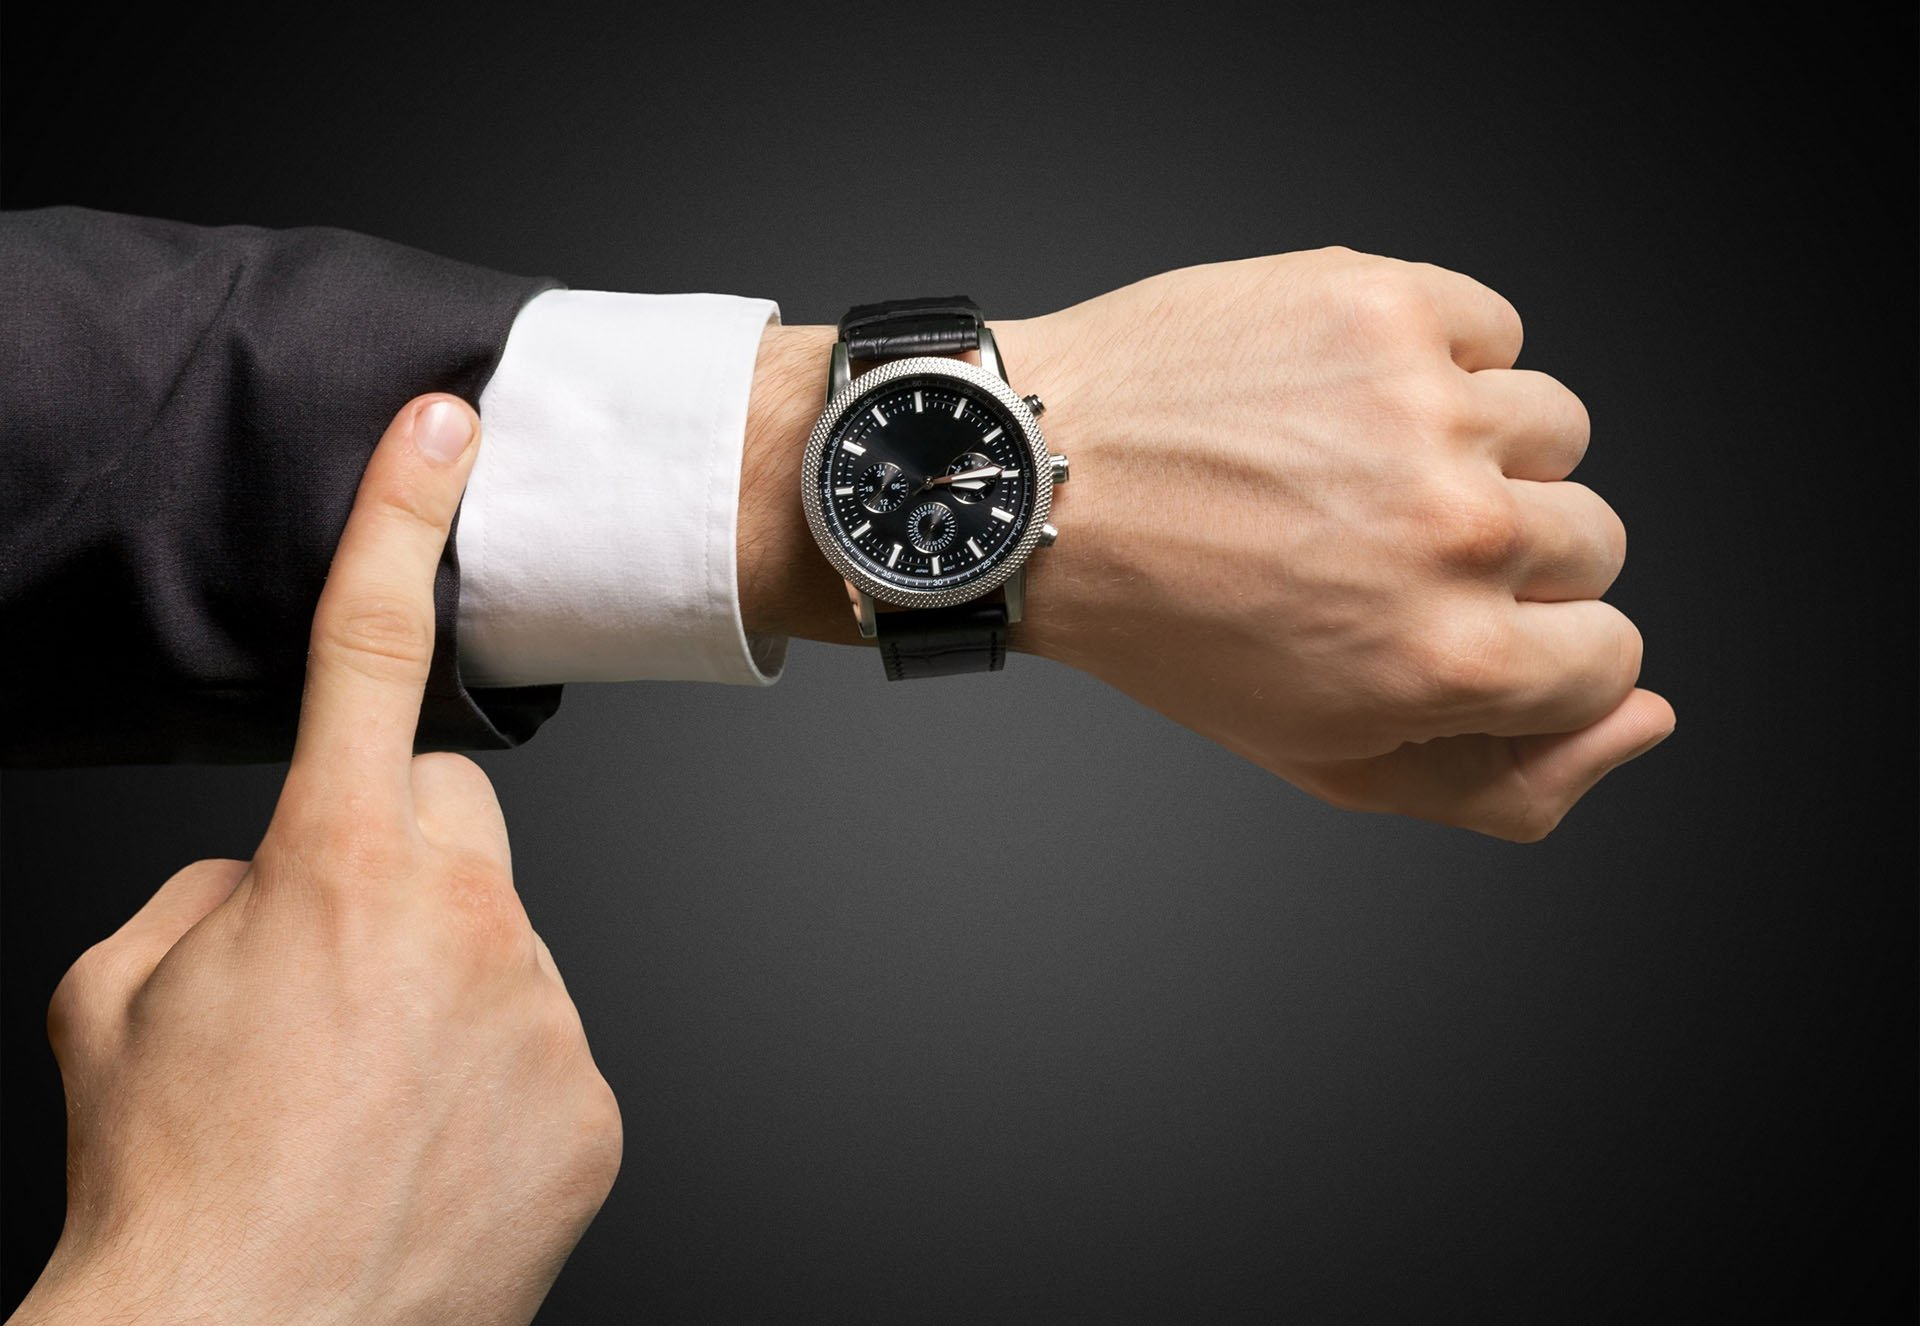 Architect Pointing at a Watch